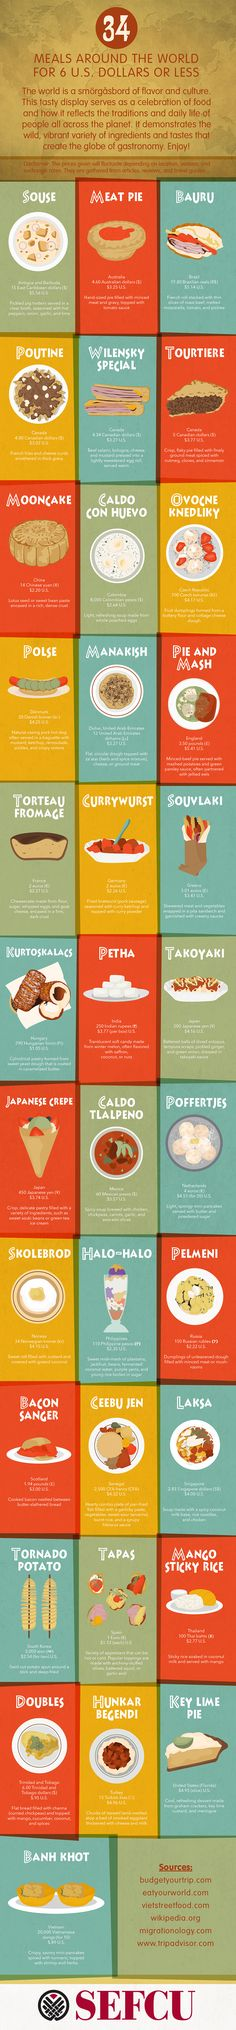 34 Meals Around the World for $6 or Less #Infographic #Food